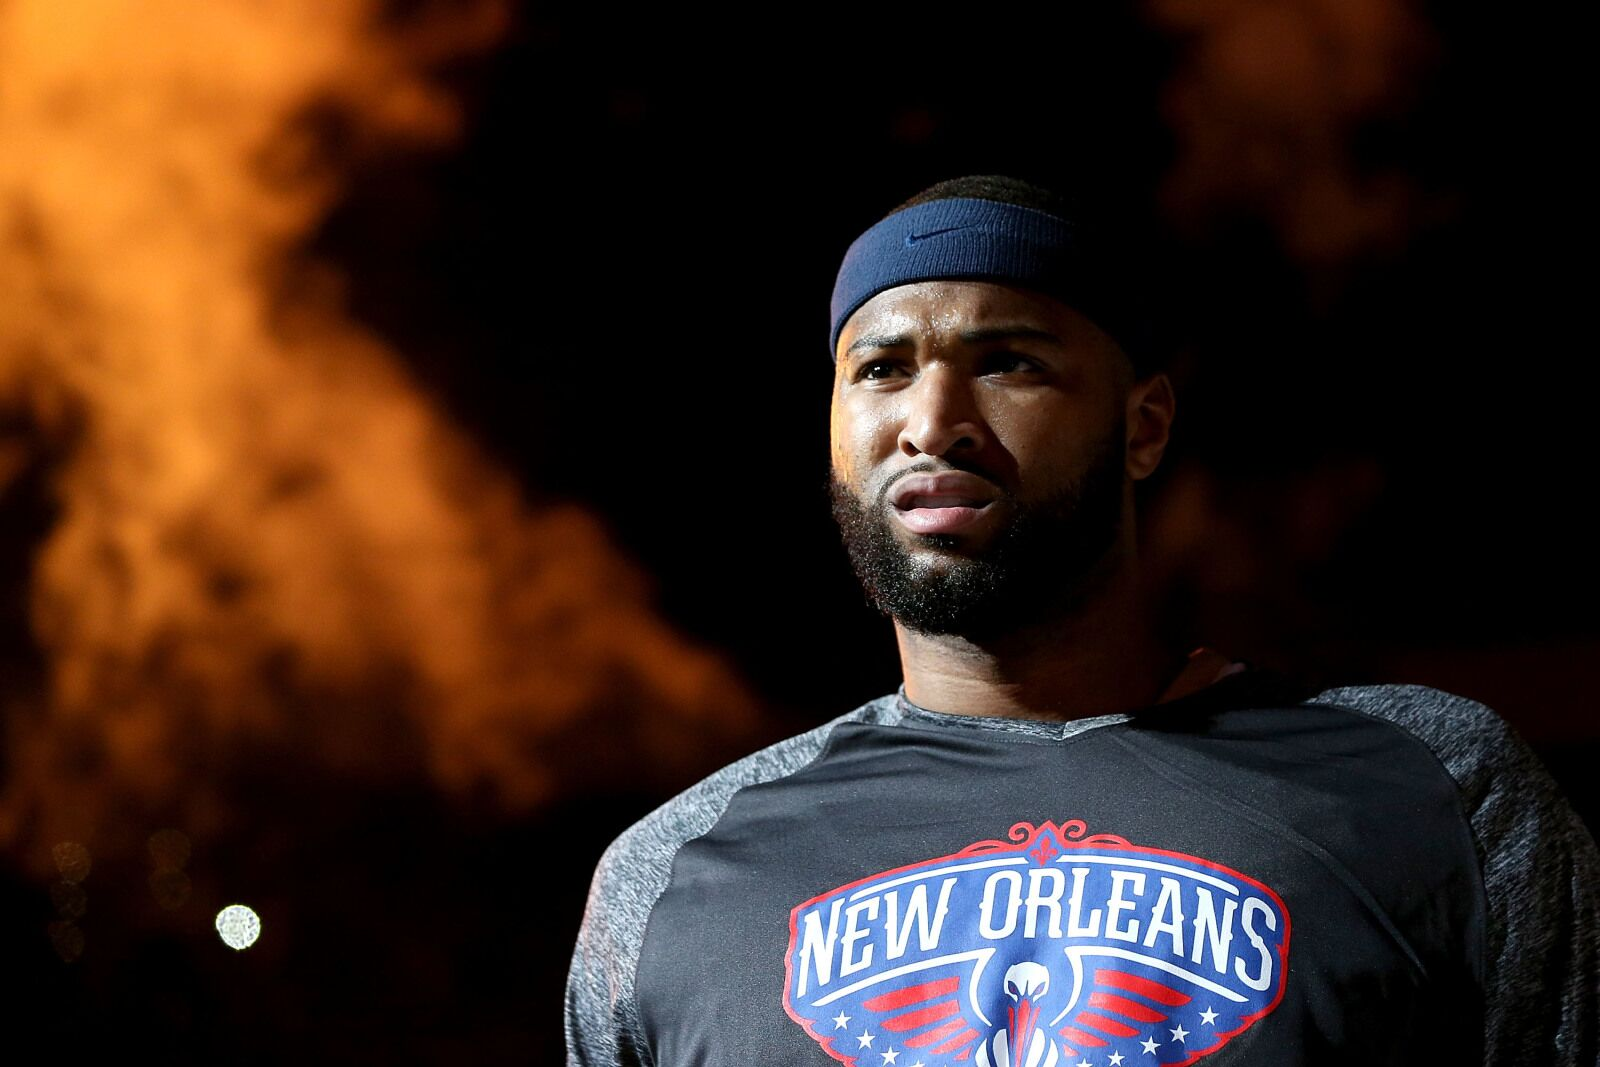 Los Angeles Clippers Analyzing Signing Demarcus Cousins